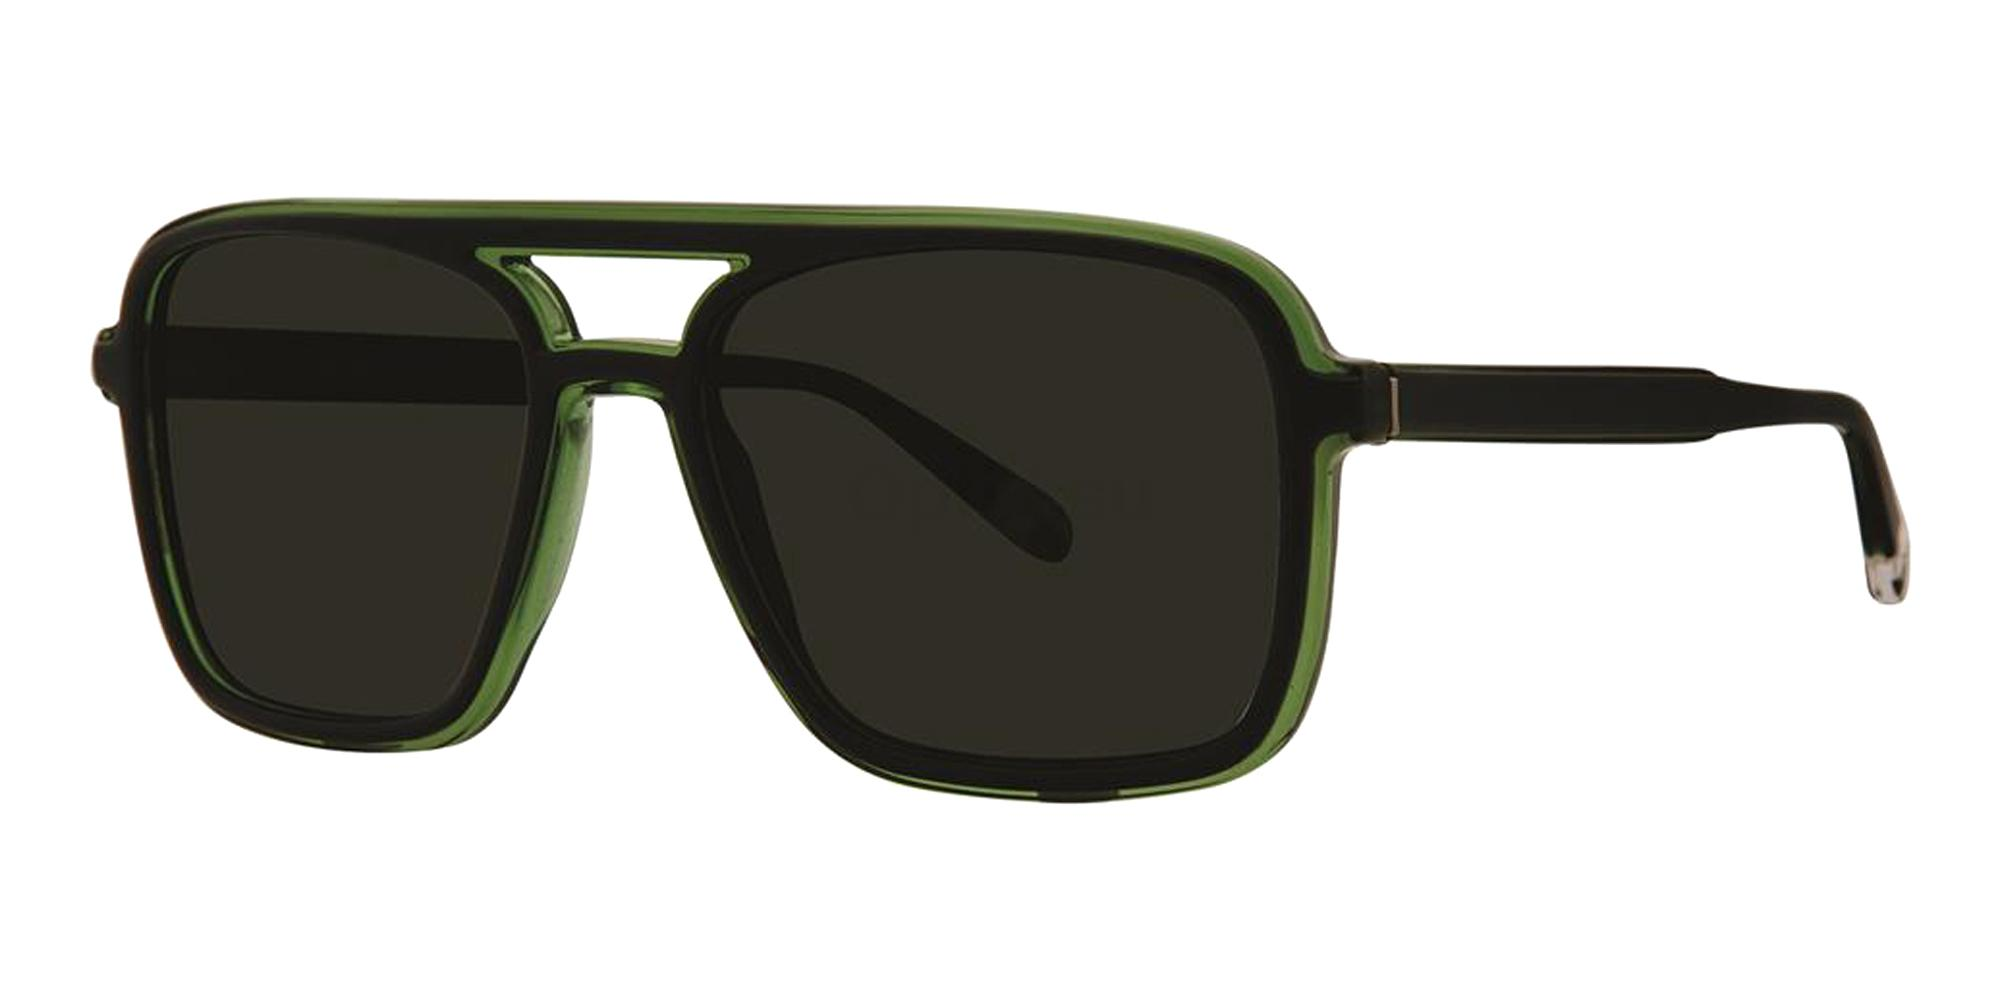 Elm THE FALKEN Sunglasses, Original Penguin